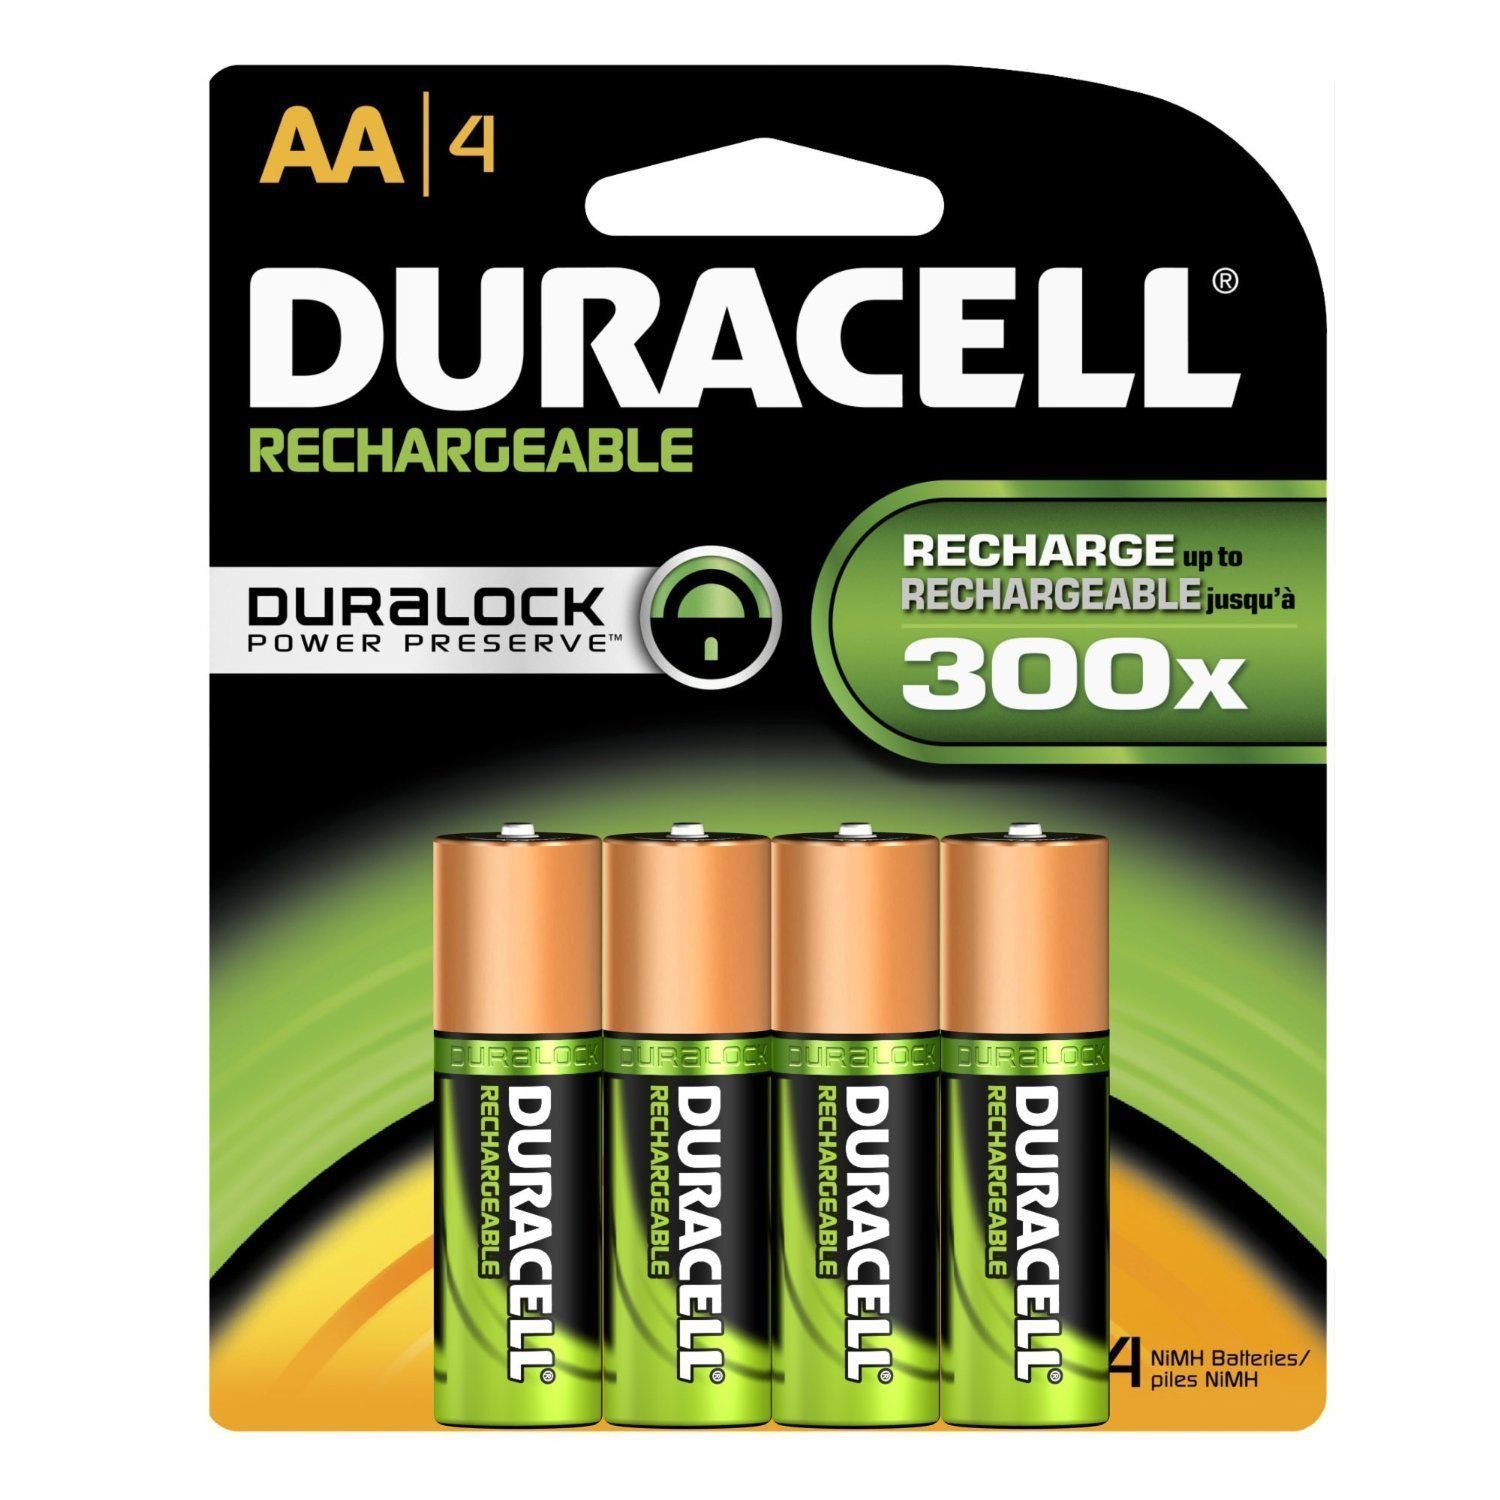 4 Pack Duracell Aa Rechargeable Batteries Aa4 1 2v Nimh Exp 2021 4x1 Dx1500h Duracell Rechargeable Batteries Nimh